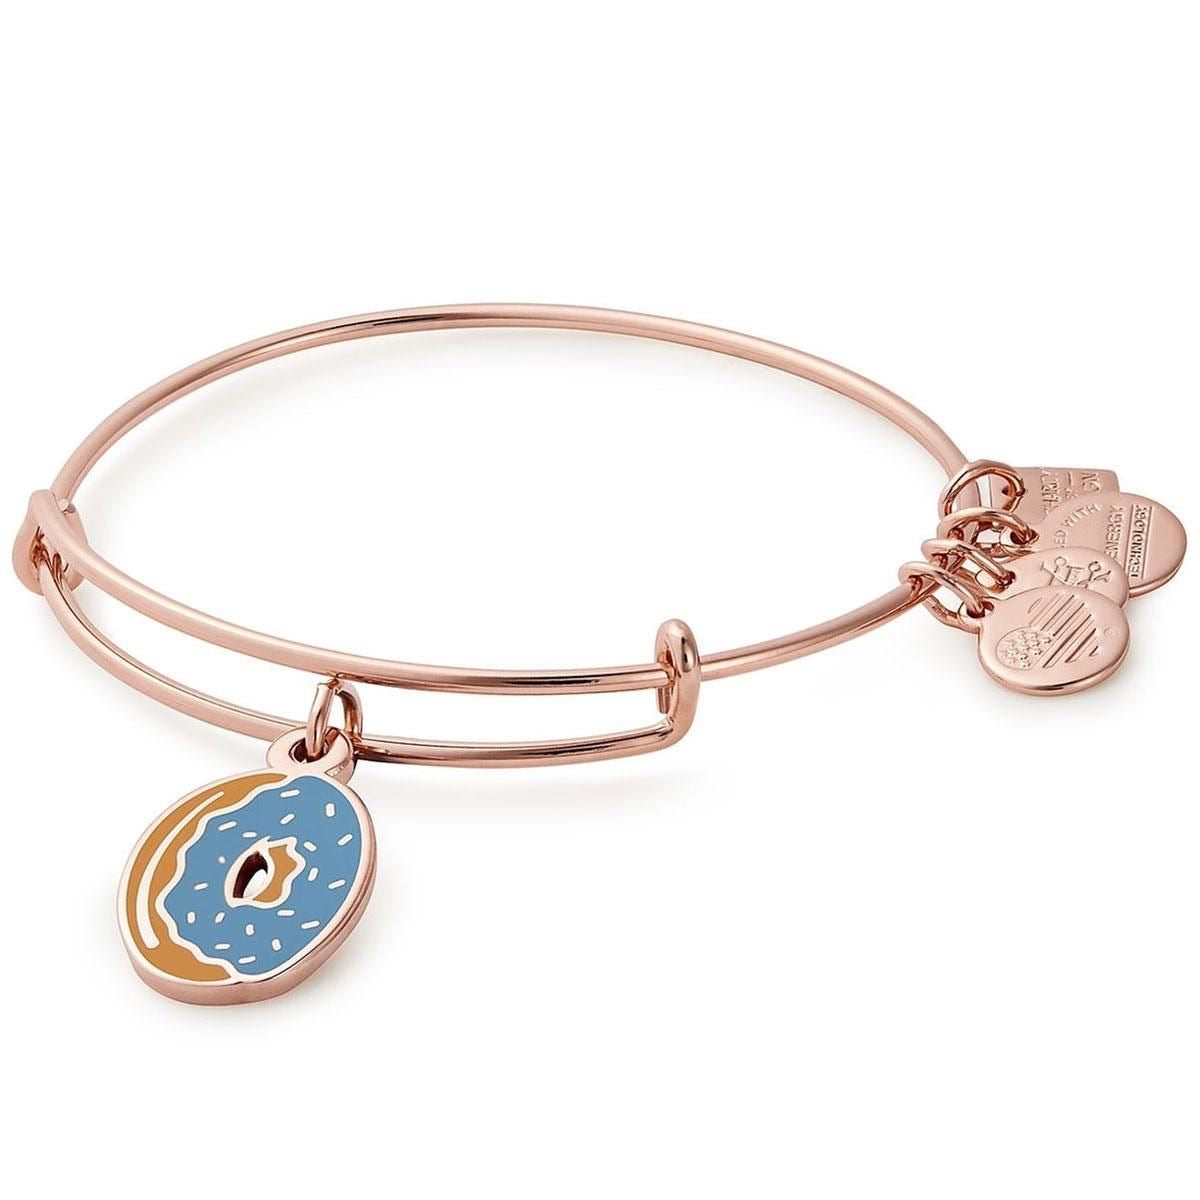 ALEX AND ANI Donut Charm Bangle Bracelet